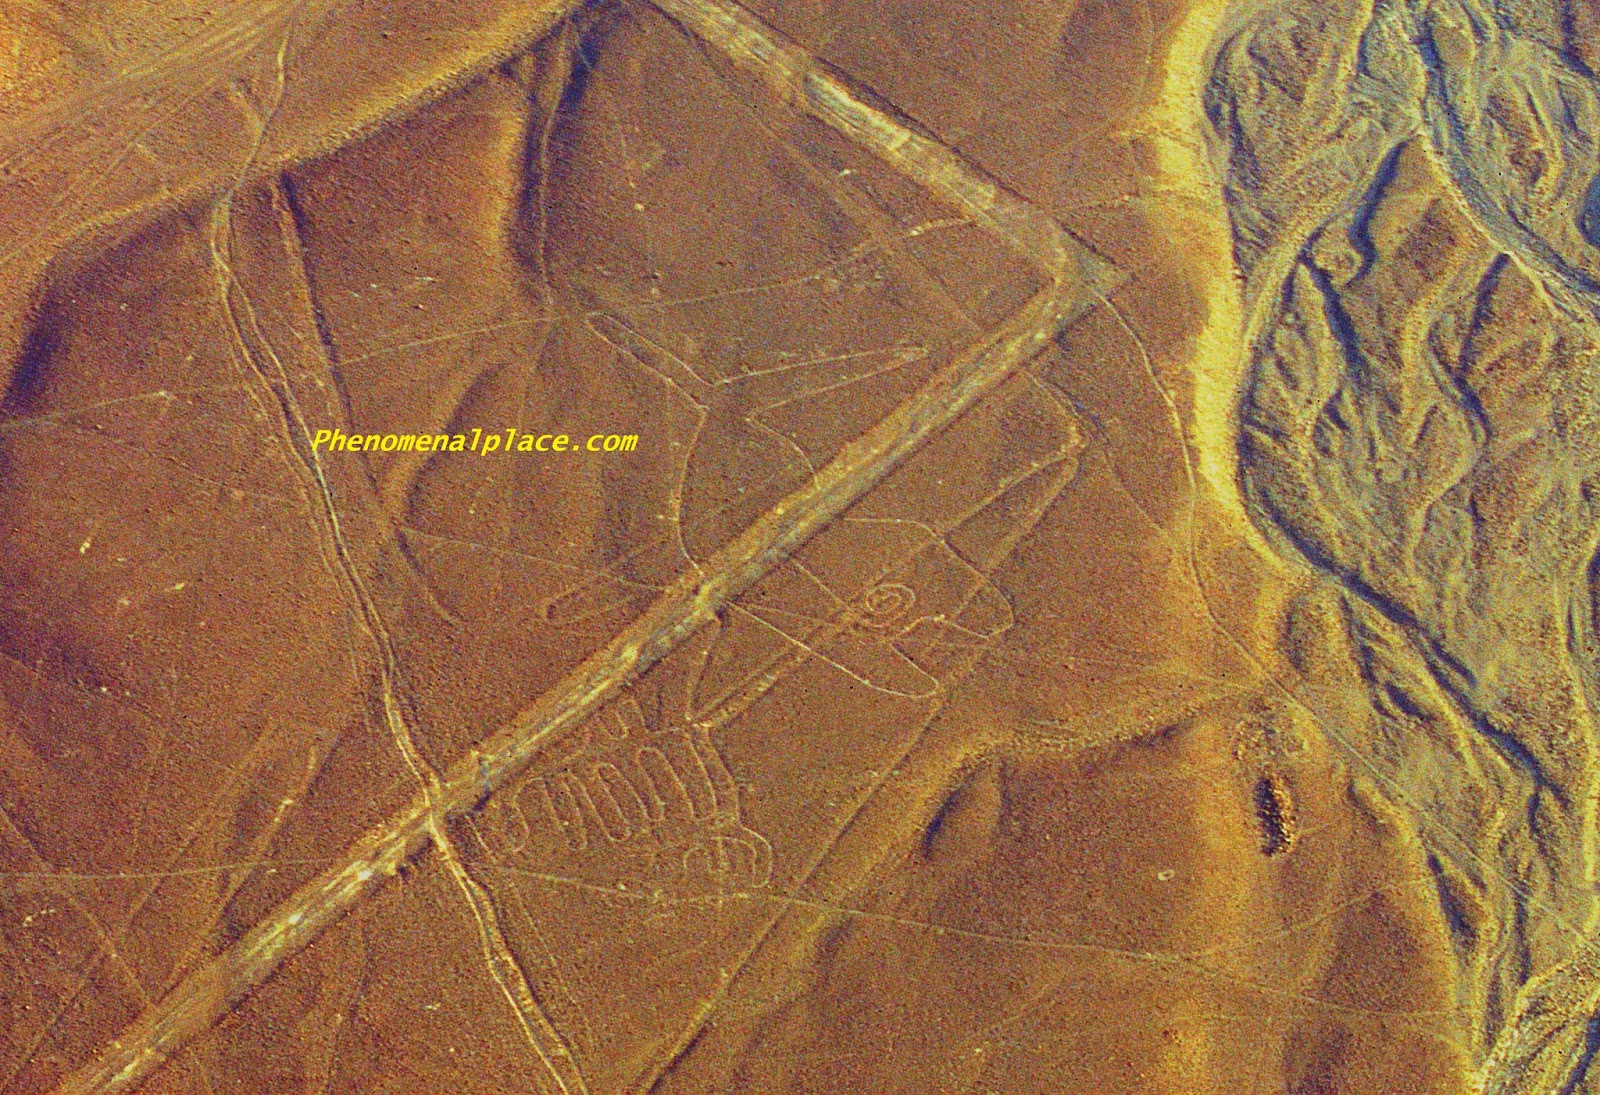 20 Facts About The Nazca Lines